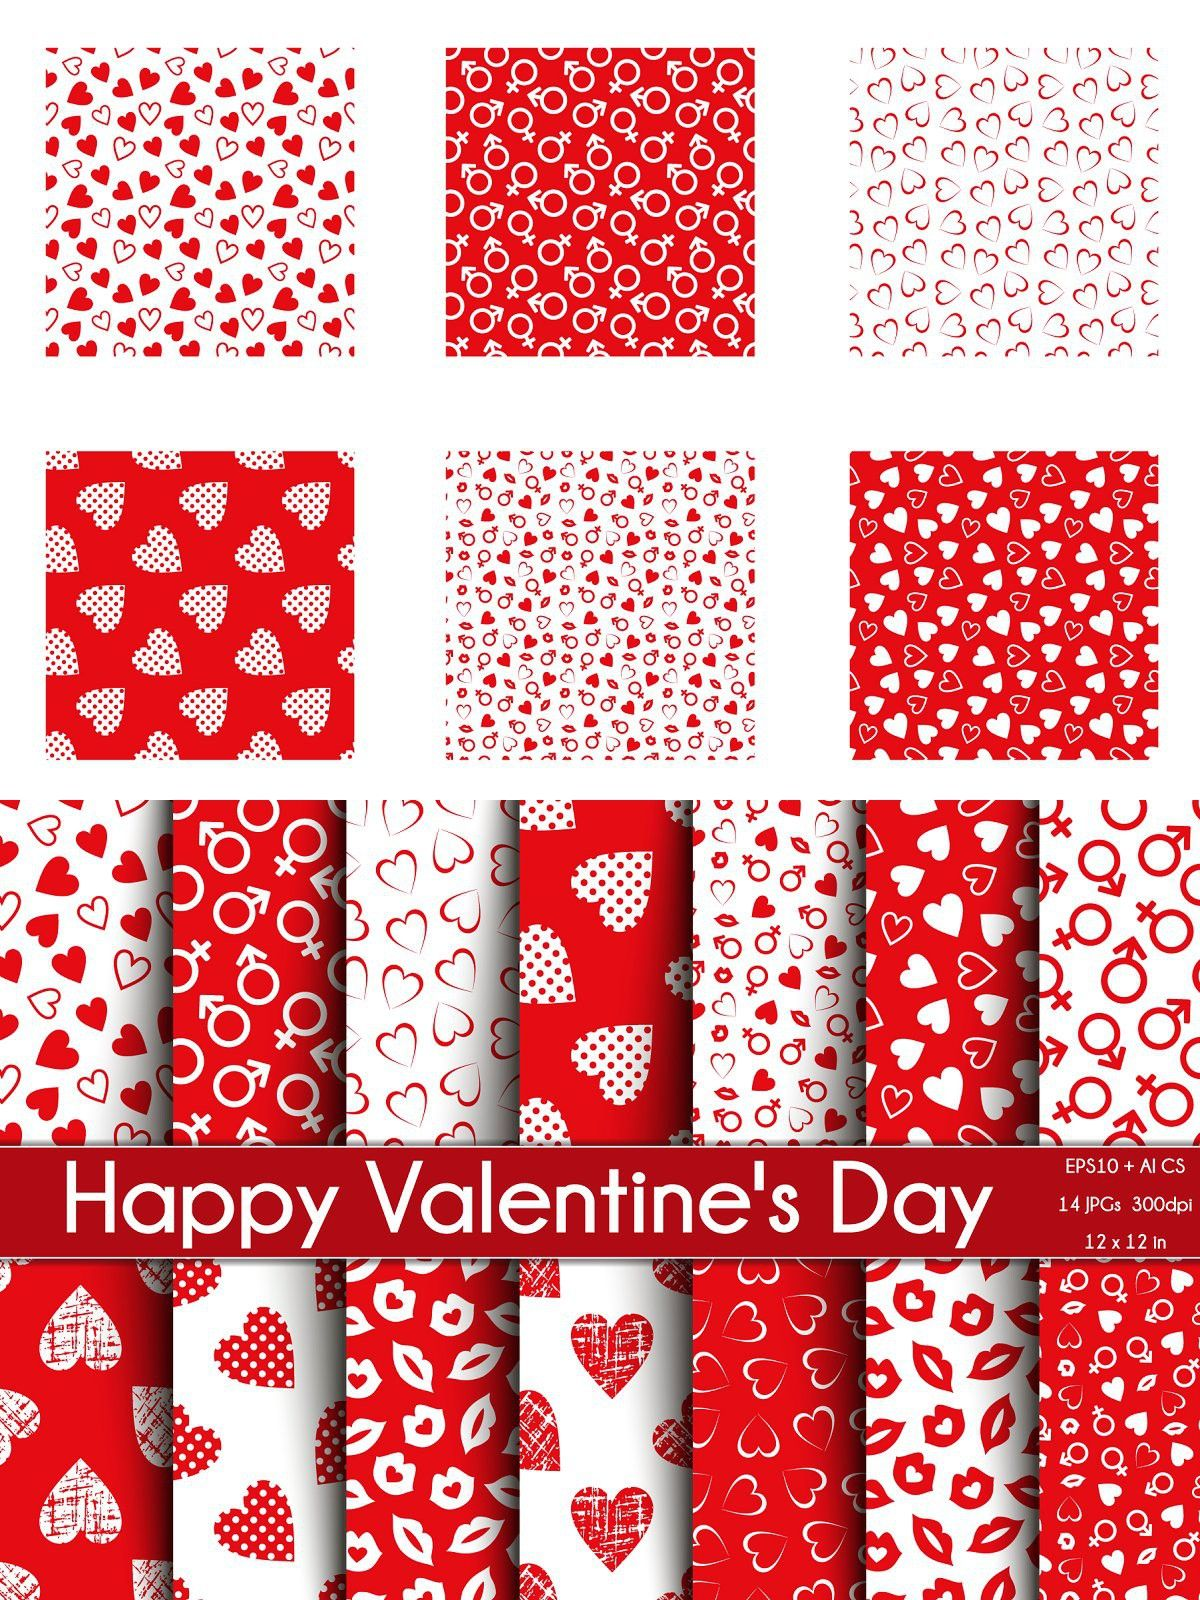 Valentine   day seamless patterns vector pattern textured background paper decorations home interior design also beautiful graphic rh pinterest